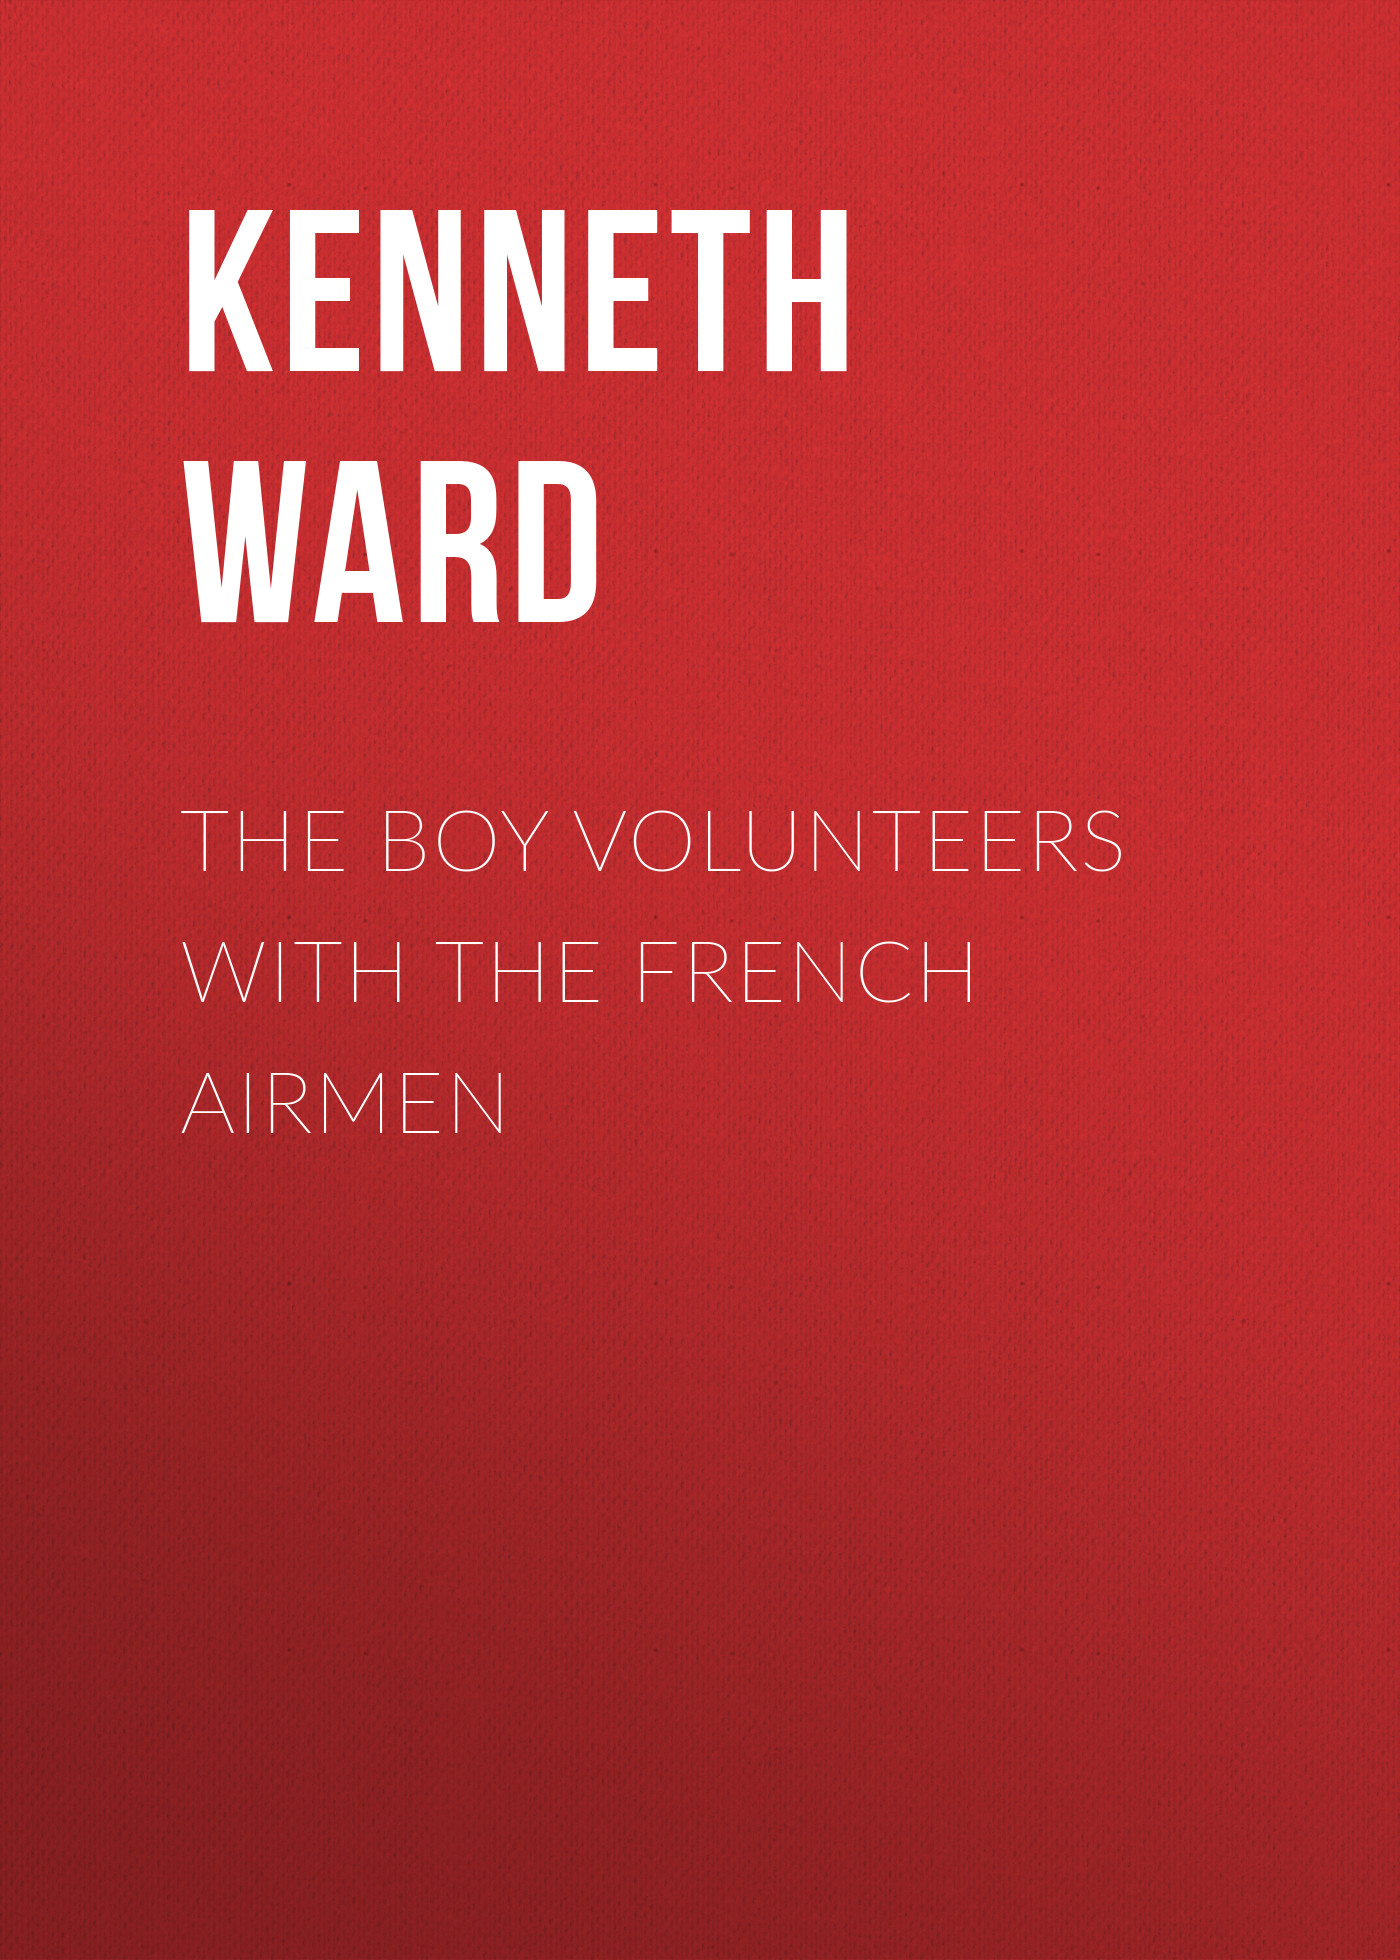 Kenneth Ward The Boy Volunteers with the French Airmen kenneth ward the boy volunteers with the french airmen